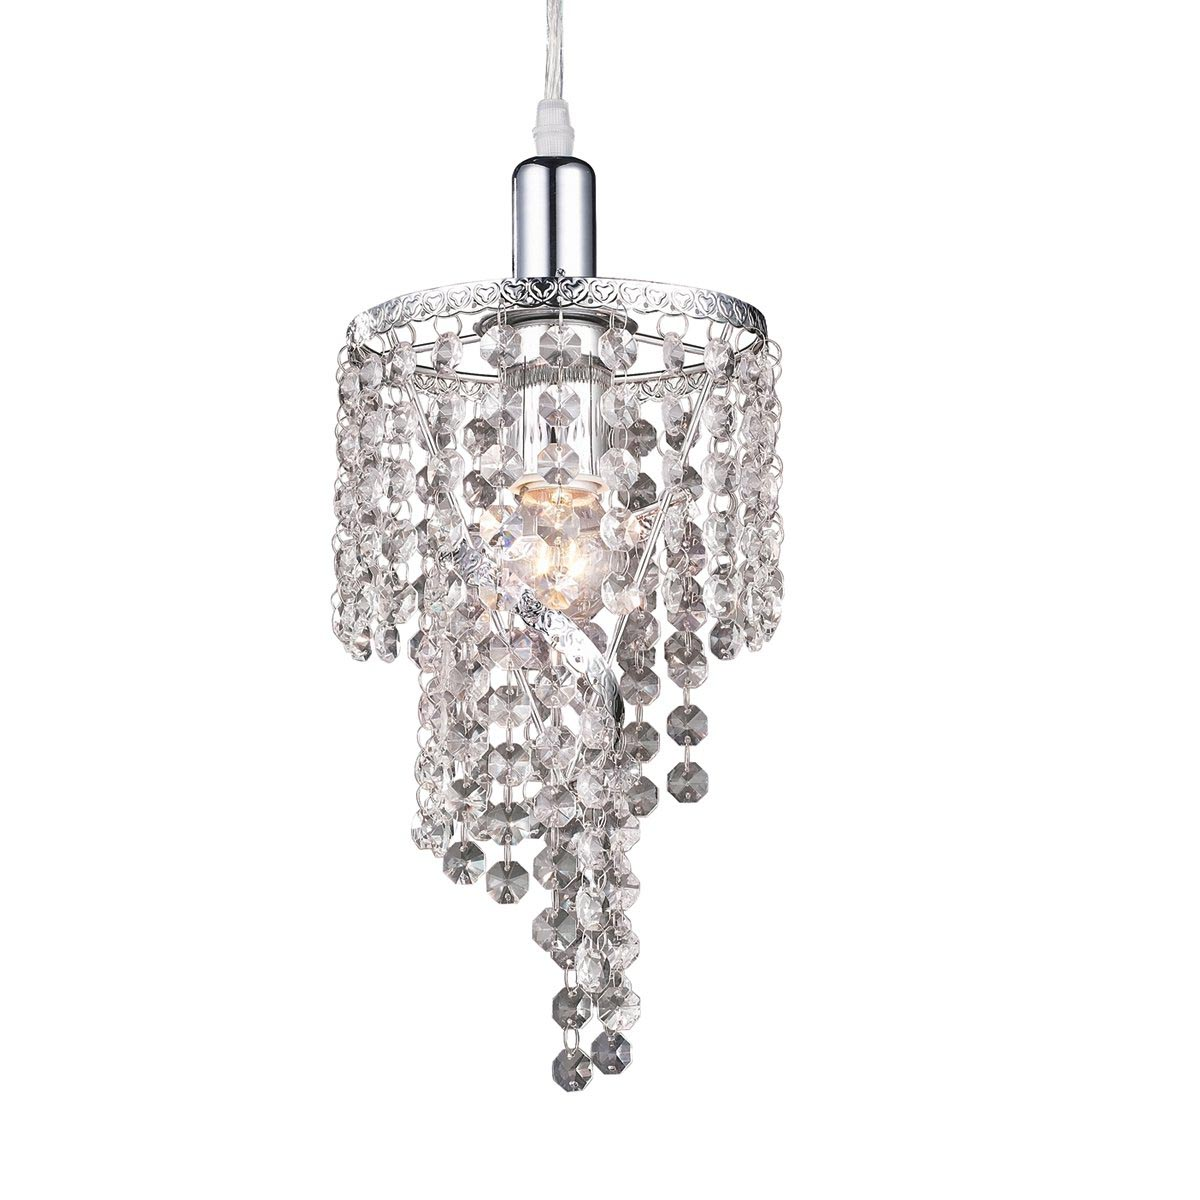 Black Crystal Mini Chandelier